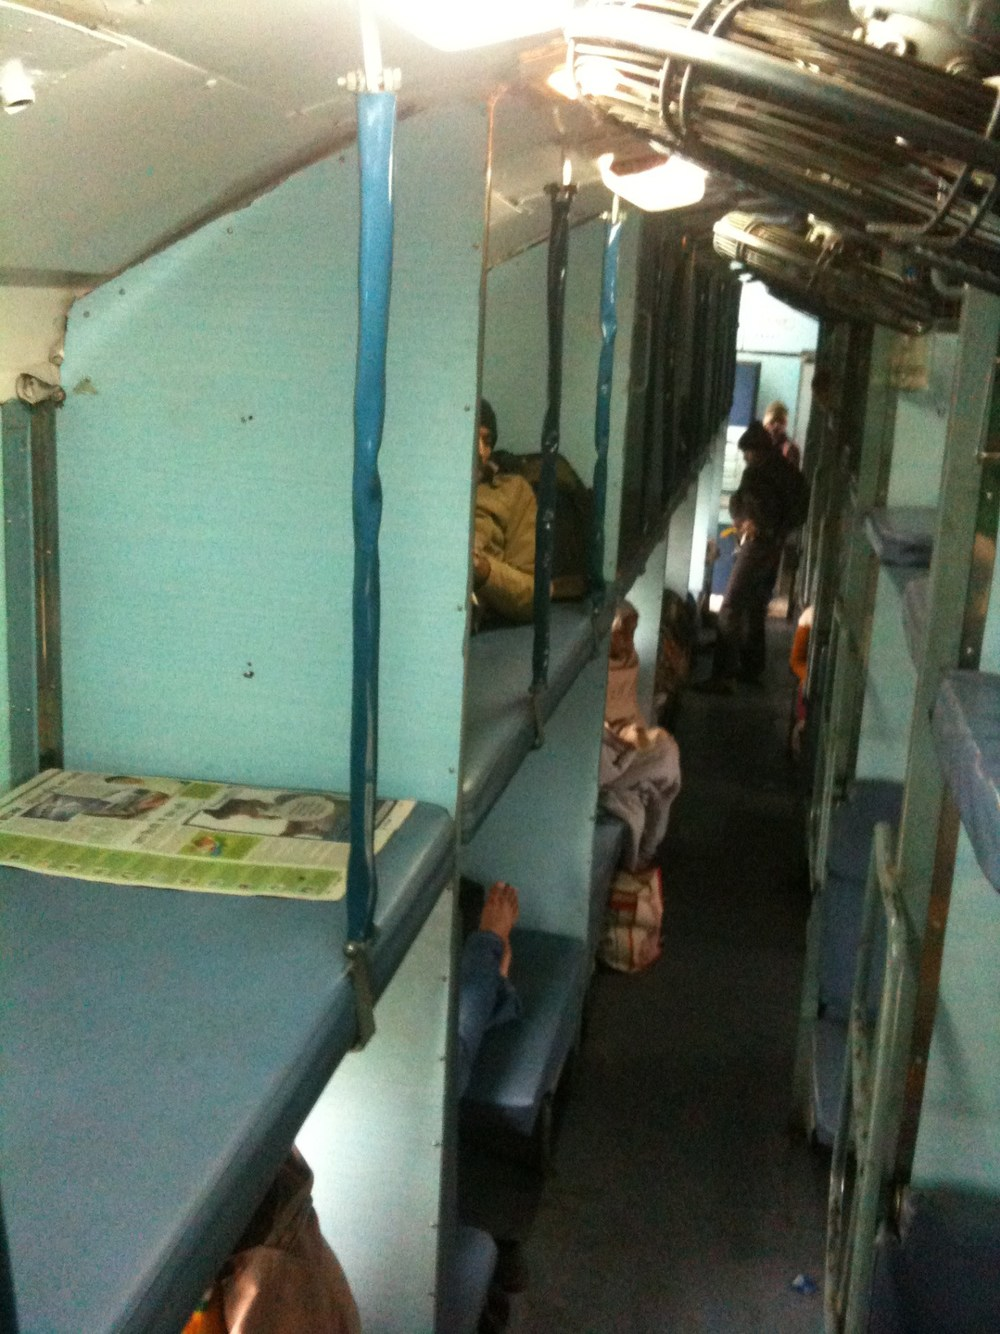 INDIA - Second class sleeper train. Pay the extra and book a First class ticket if you are on your own!